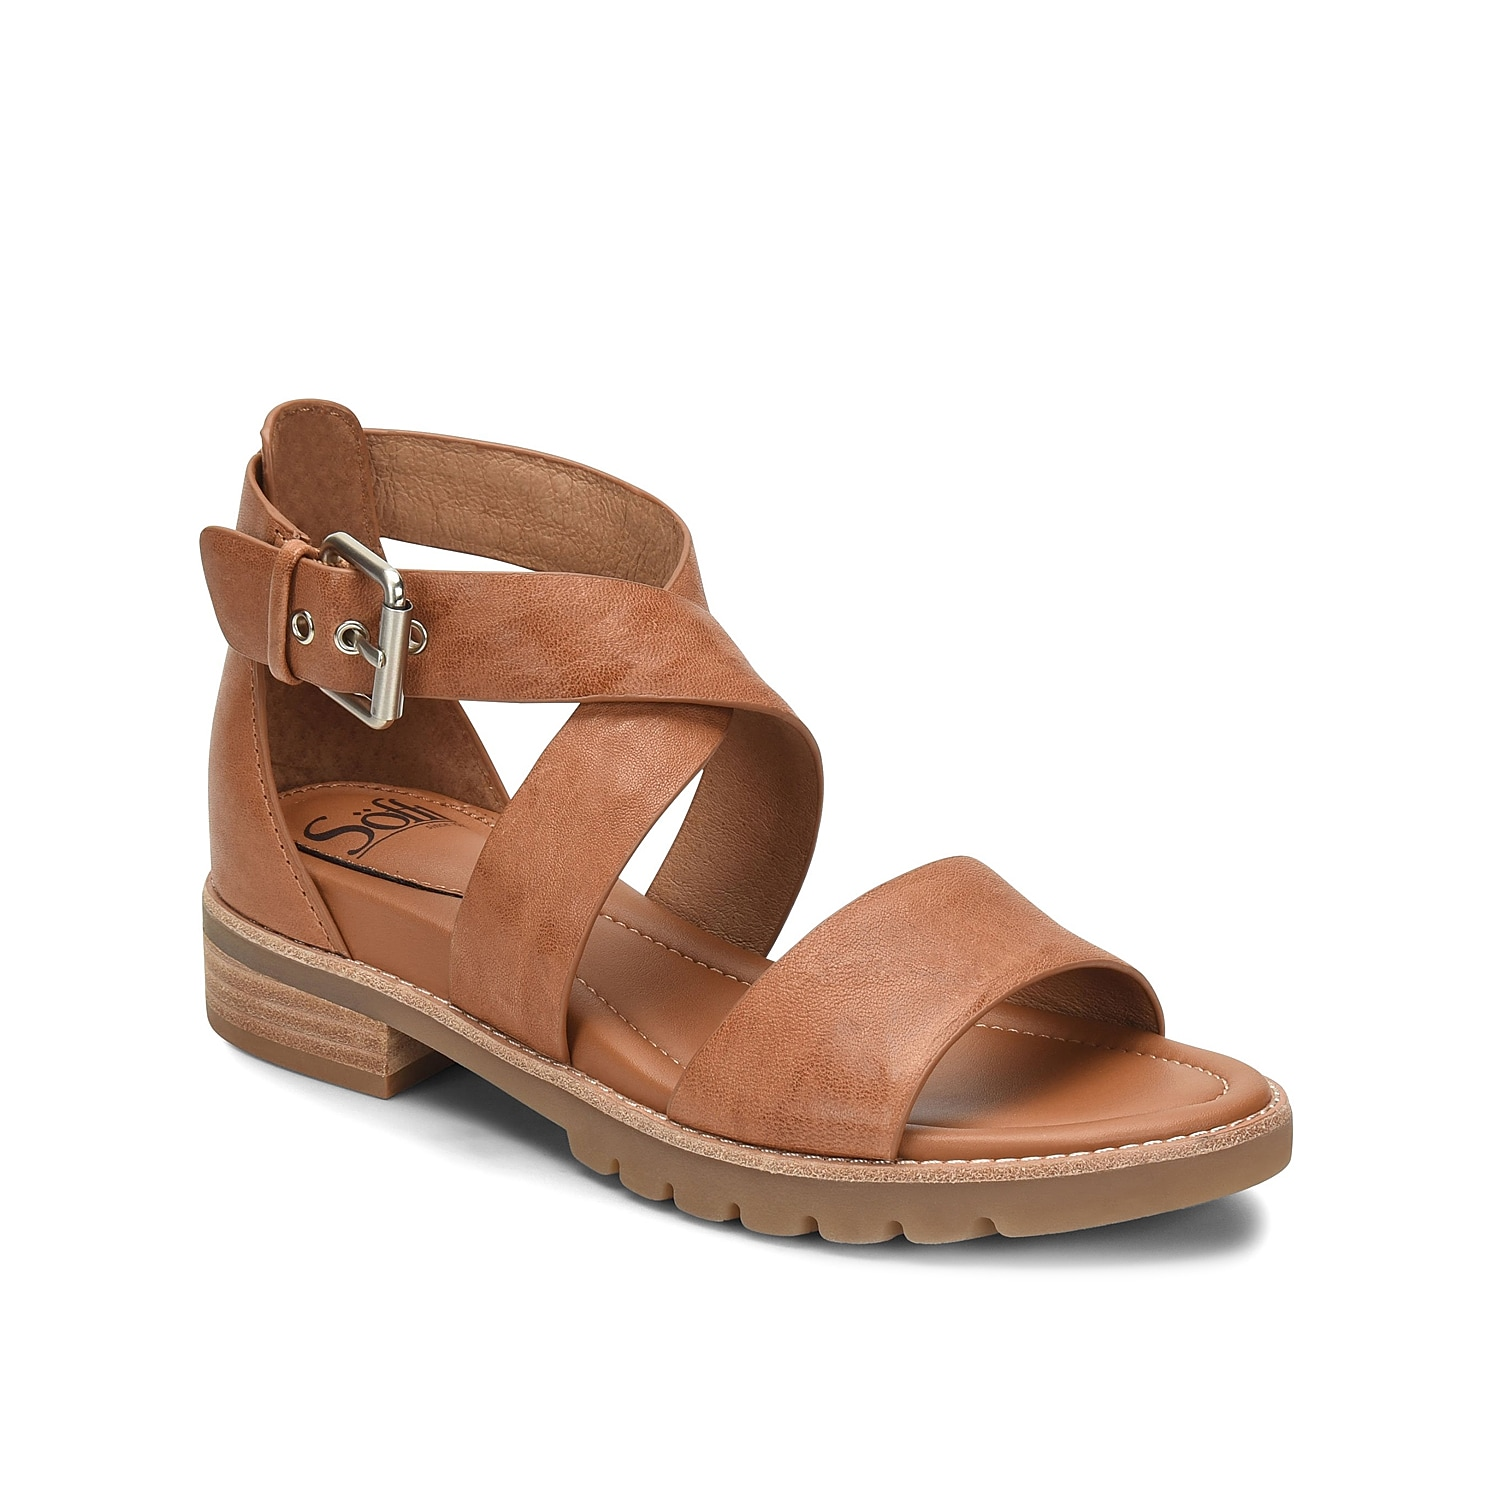 The Novia sandal from Sofft will complement any warm weather look! A cushioned footbed and leather lining will keep you comfortable all season long.